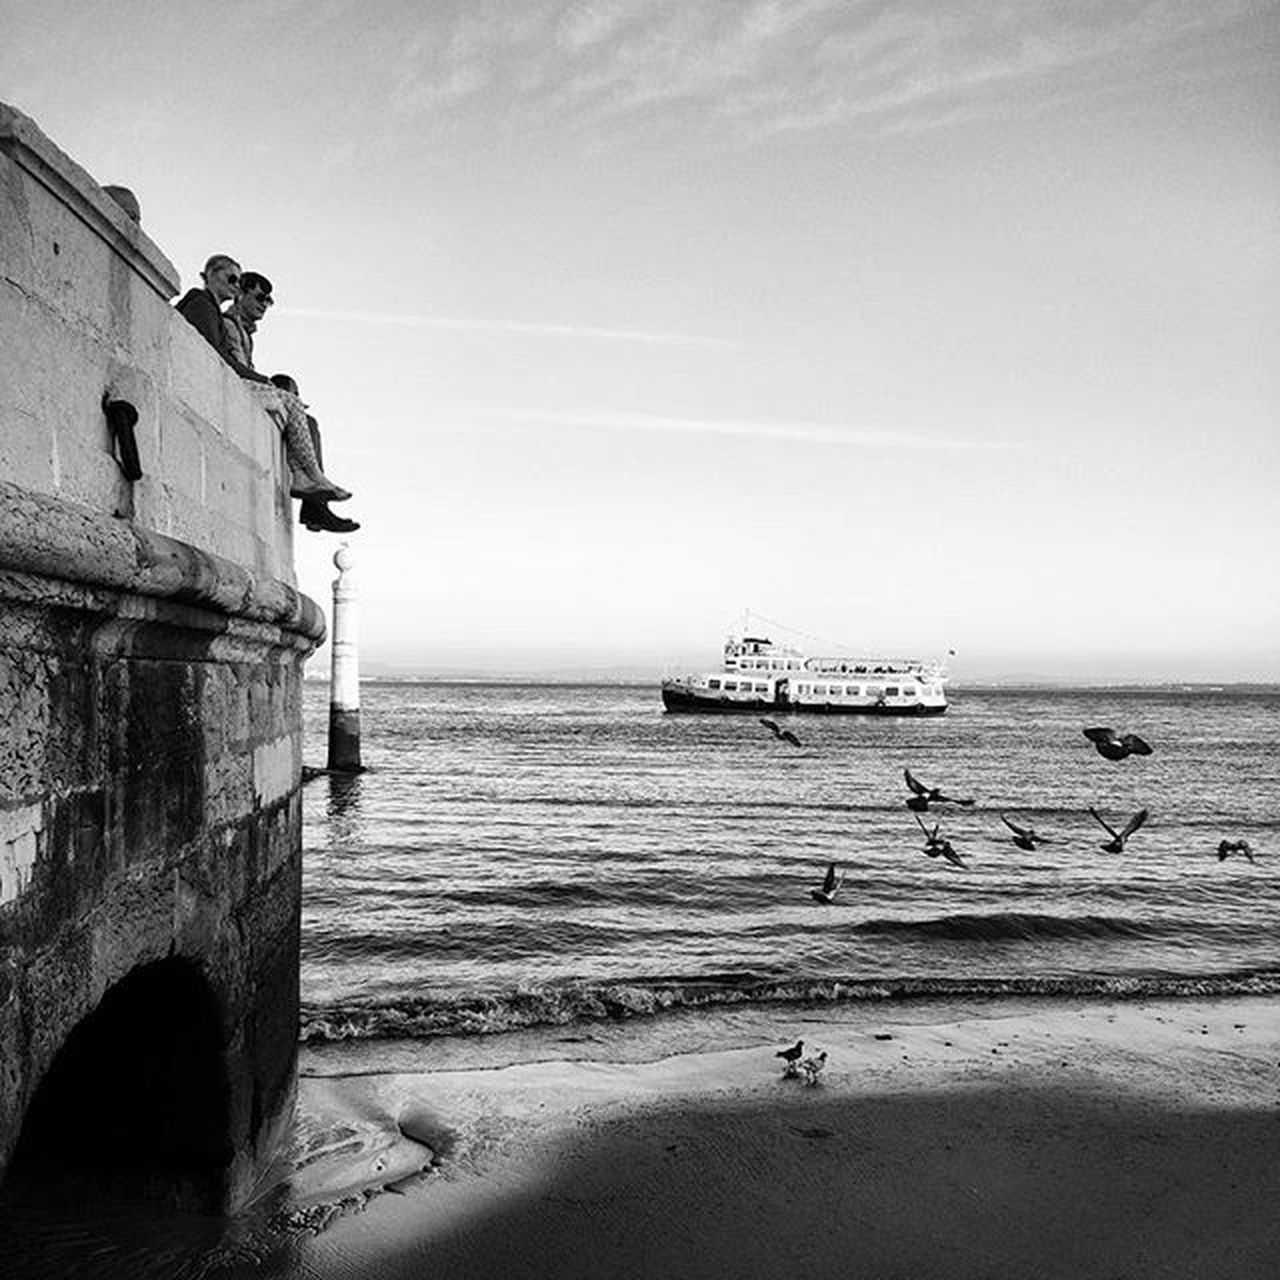 Caisdascolunas TerreiroDoPaço Lovelisbon Sunset Sunnydays Birdies River Blackandwhite Bng Bnw_captures Igers Igers_portugal Faded_world Faded Mysquarehere Love Enjoyit Liveit Behappynomatterwhat Laliphotography Boat Landscape Cityscapes P3top Wonderful_places nofilter top_bnw vscoportugal vscocam vscolife